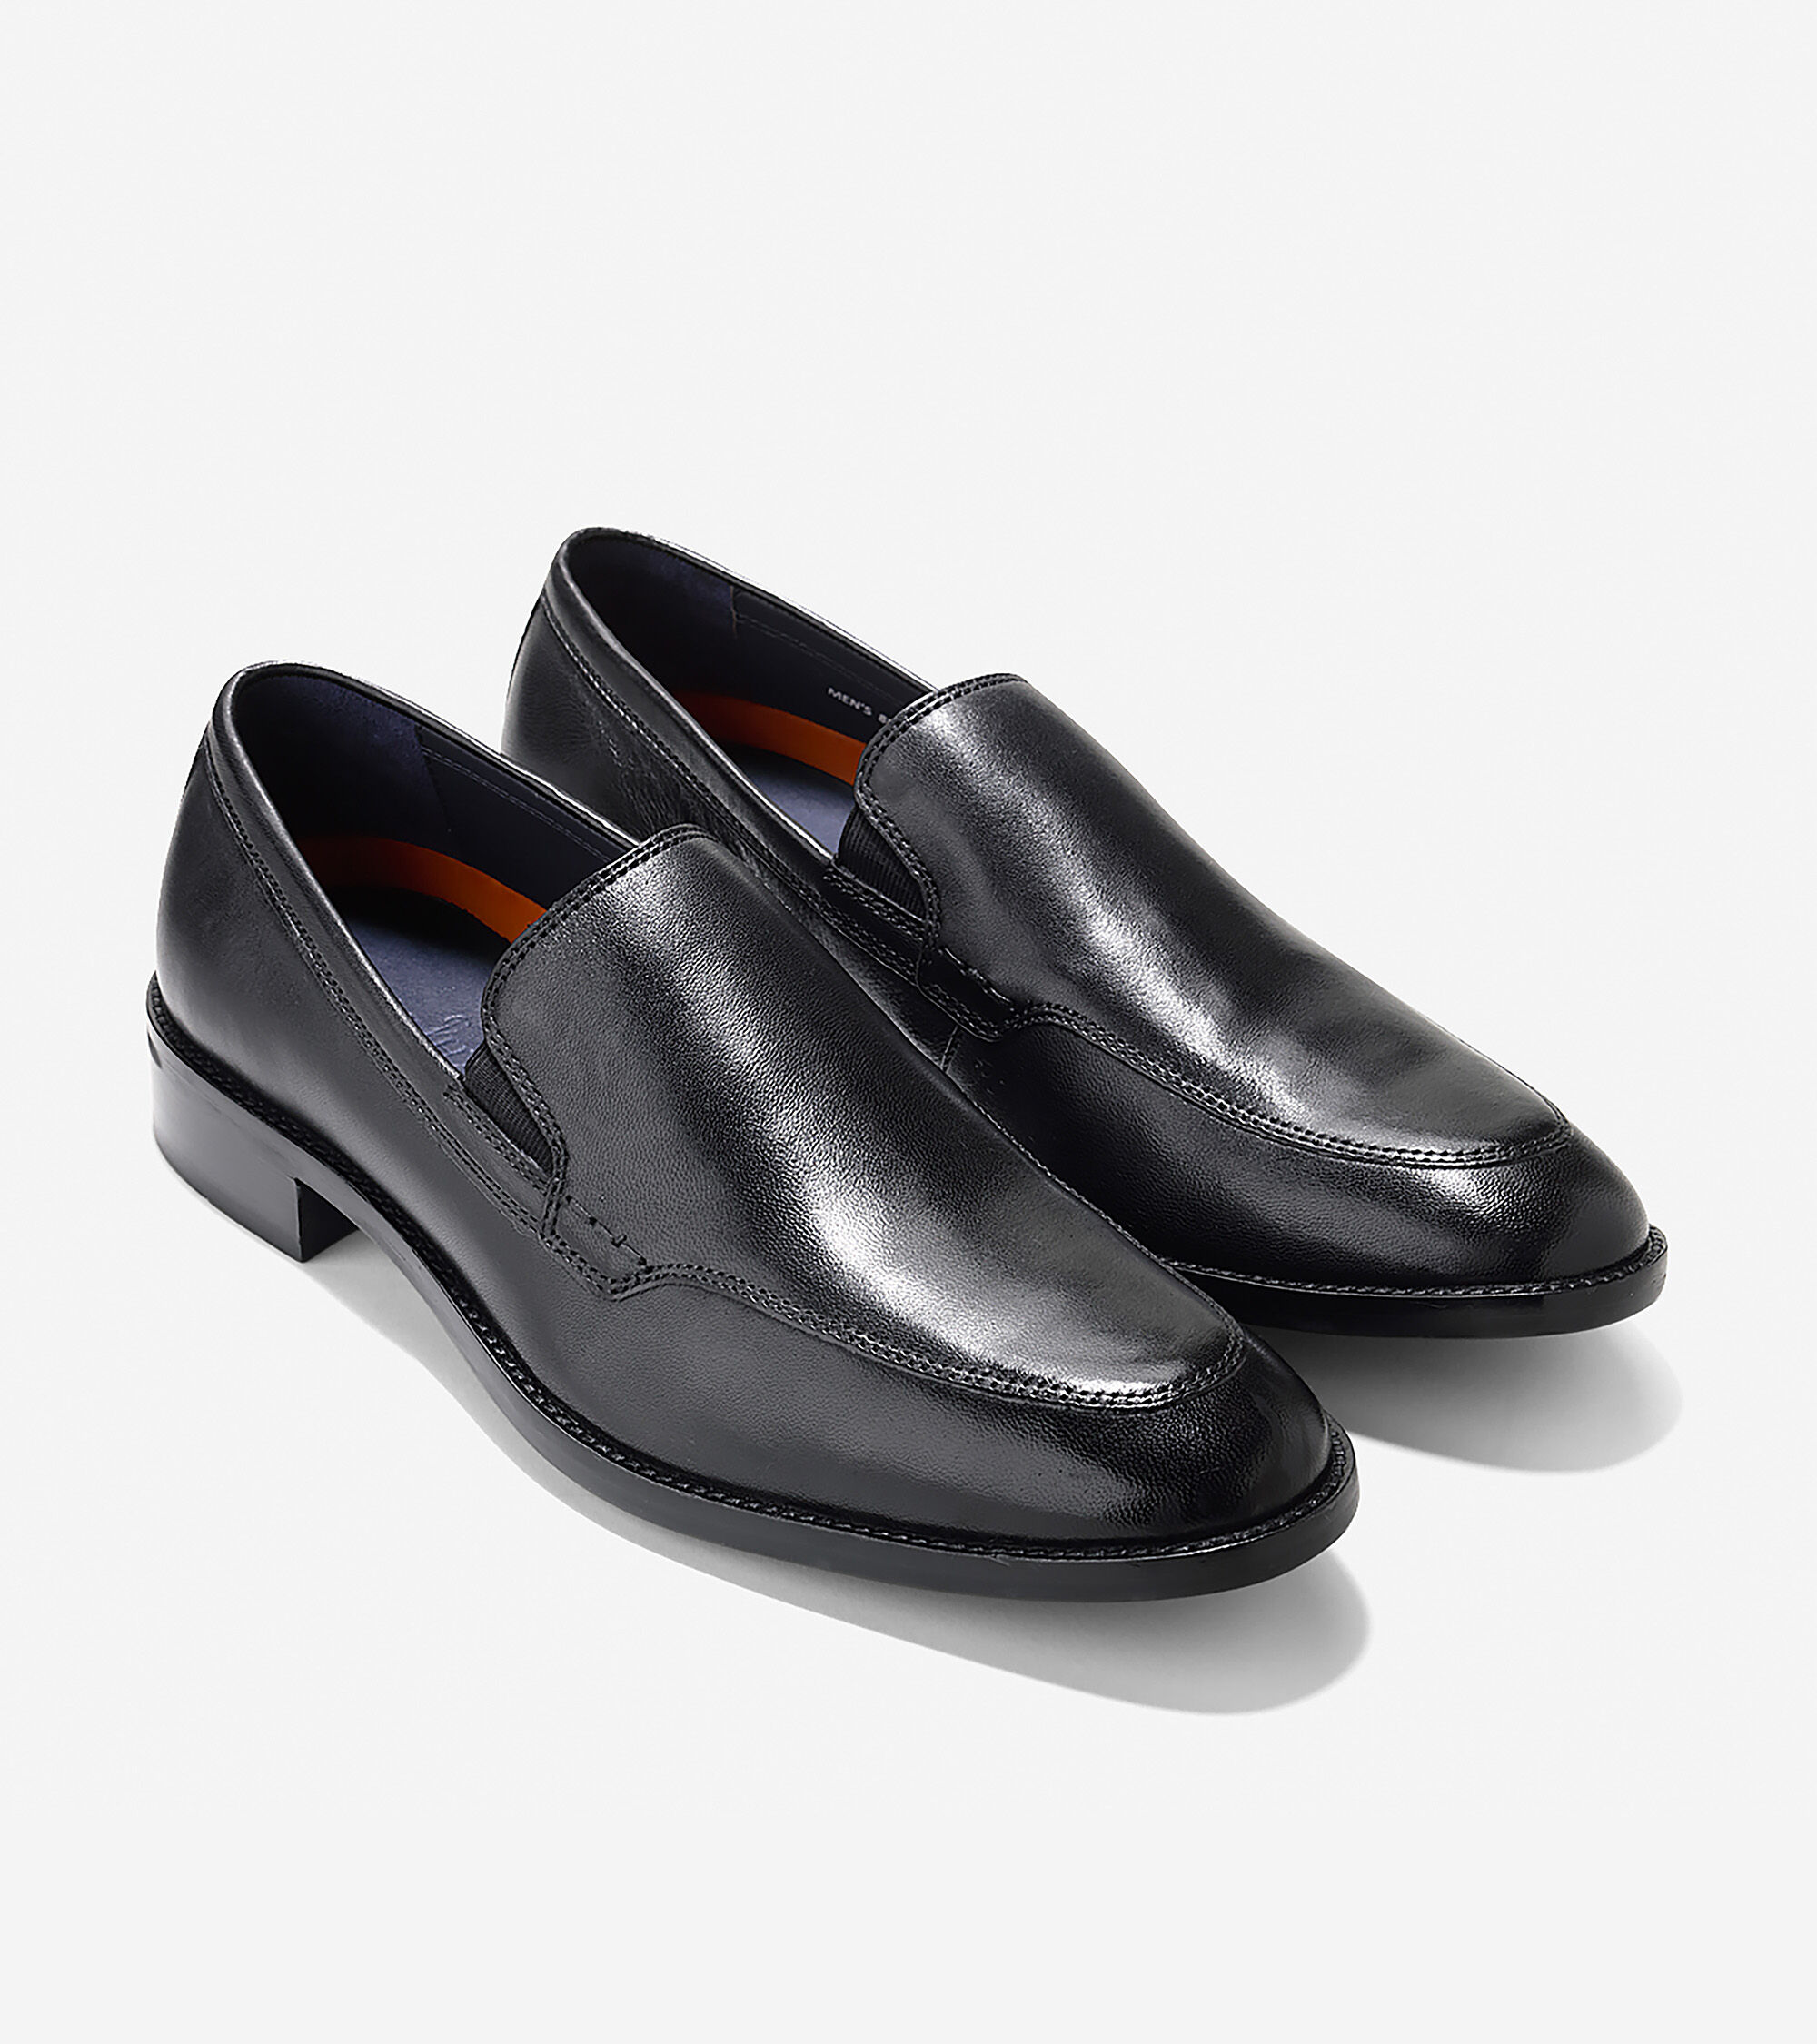 Cole Haan loafers Men's 10.5 M Lenox Hill Slip-On Black Leather